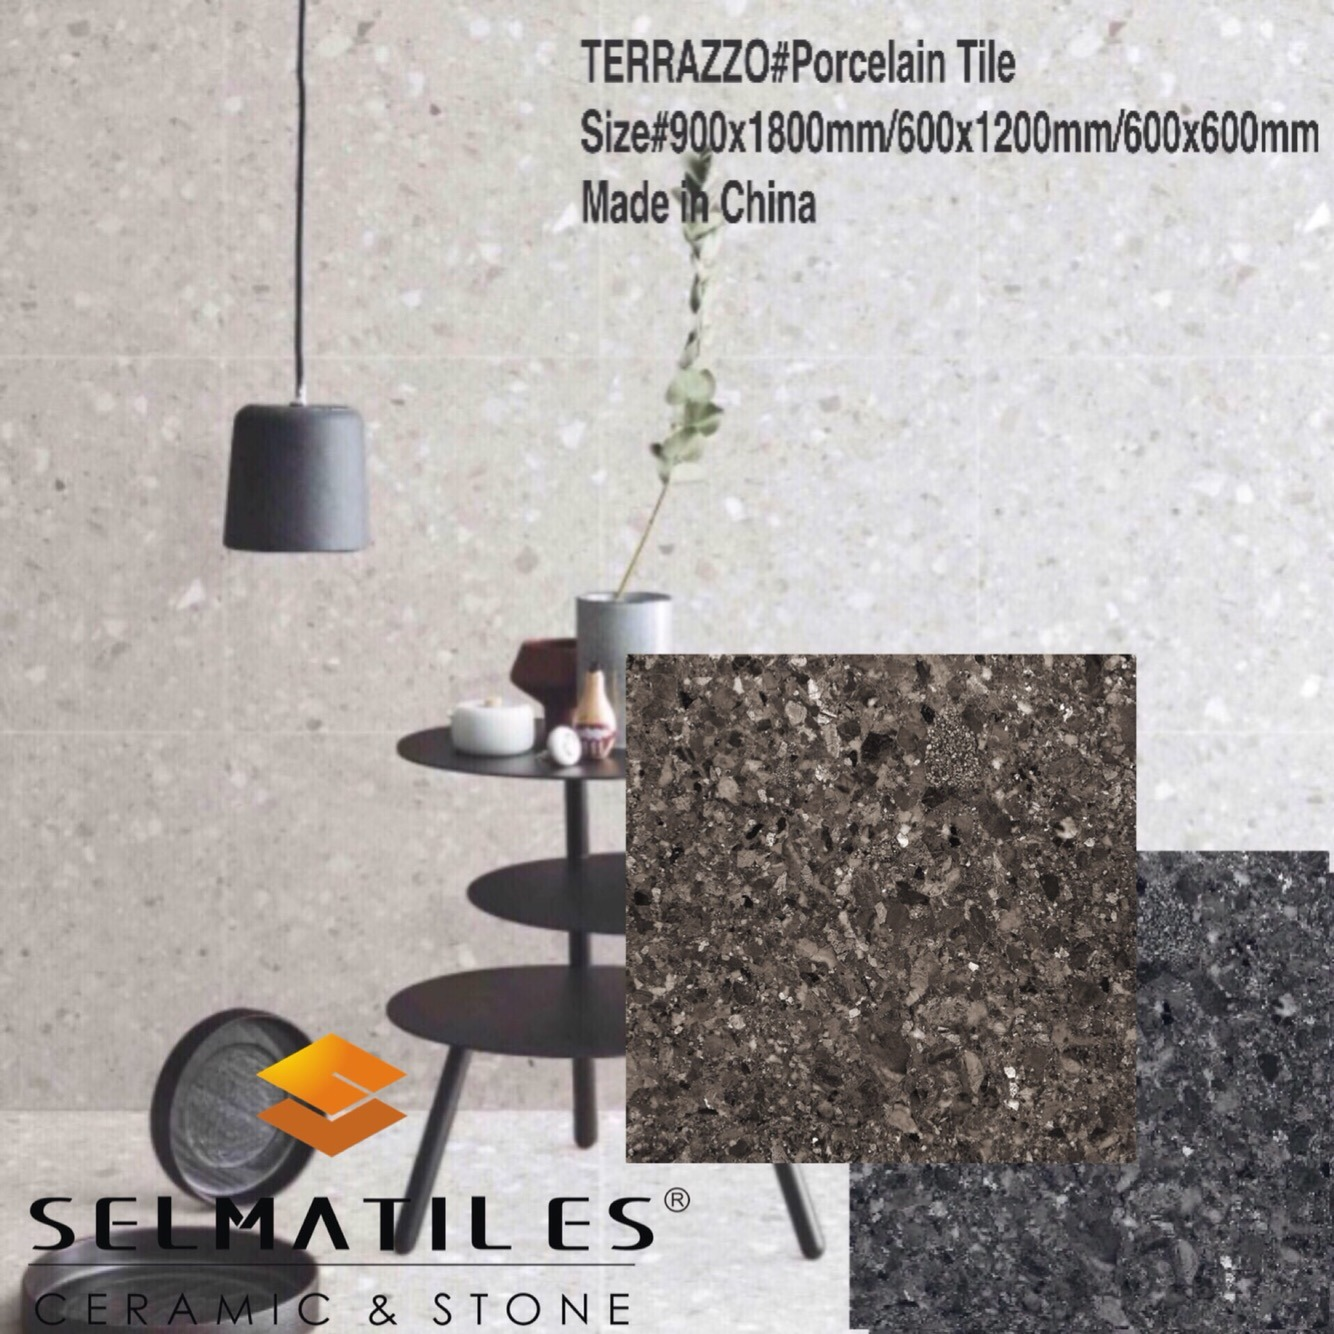 Hot Item Salerno Terrazzo Building Material Porcelain Floor And Wall Tile 600x1200mm